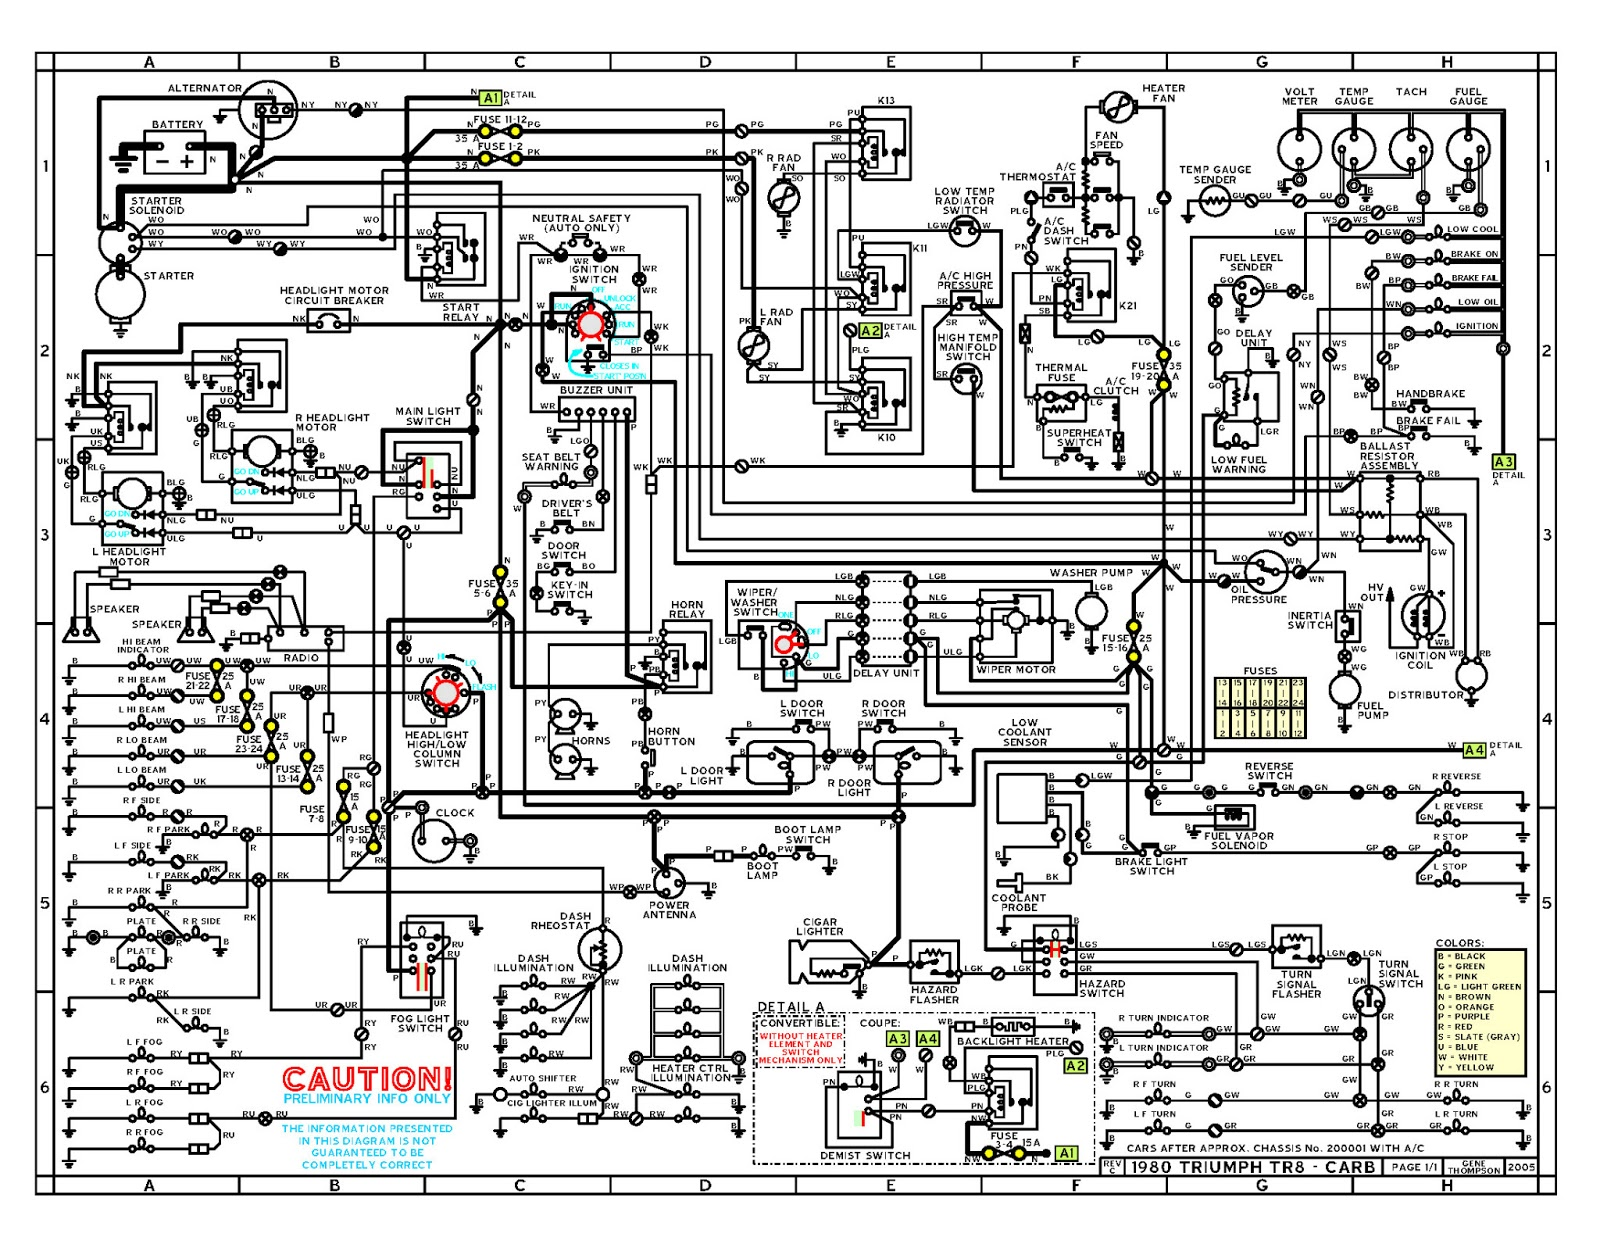 fancy 1975 tr6 wiring diagram gift electrical circuit diagram rh suaiphone org Wiring Harness Wiring-Diagram TR6 Wiring Harness